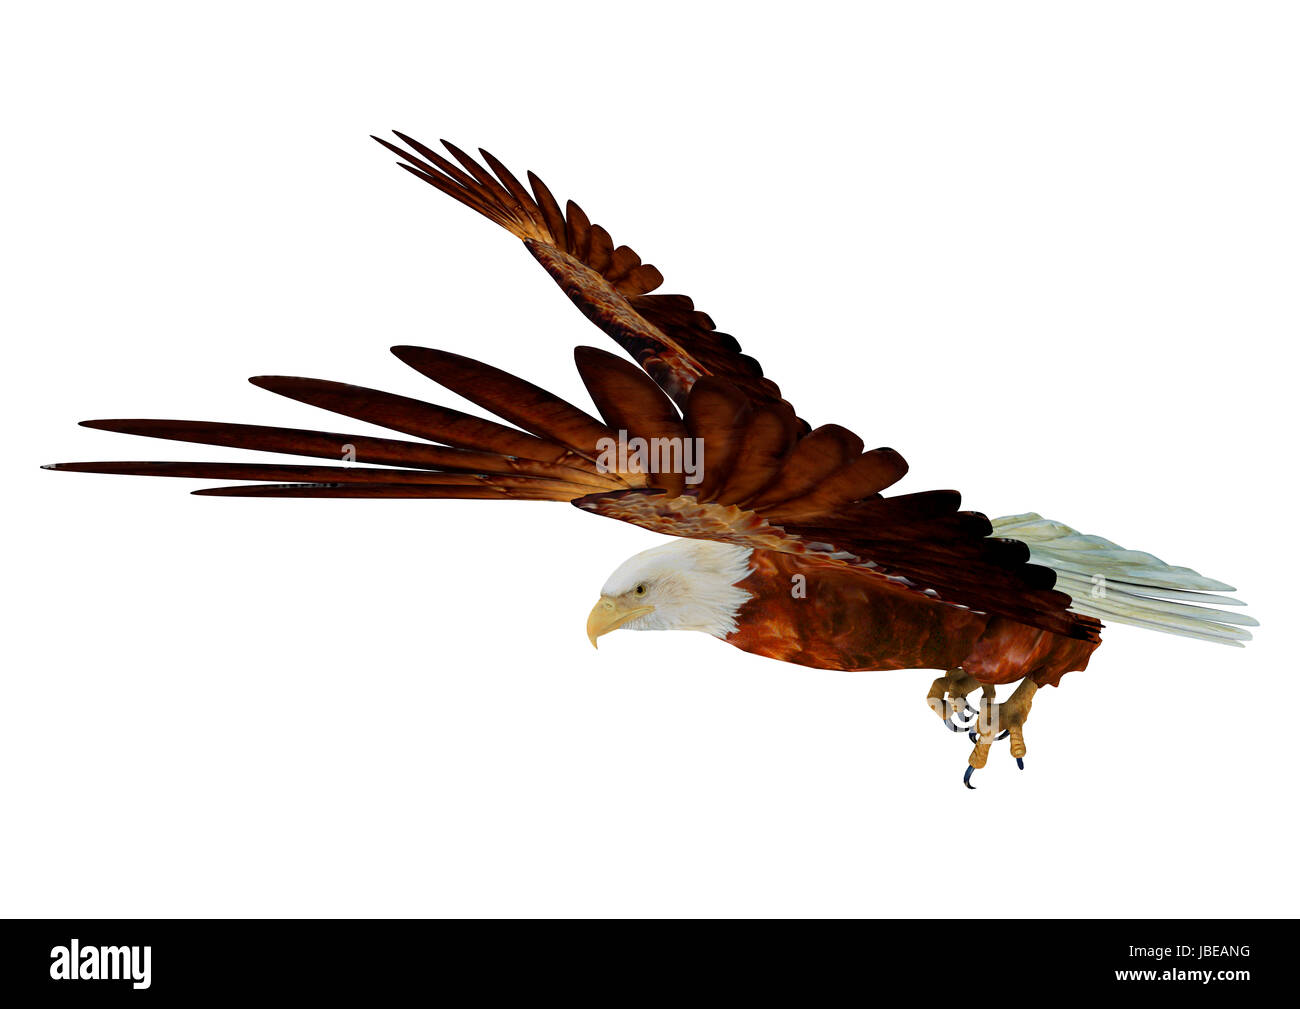 3d digital render of a flying eagle isolated on white background 3d digital render of a flying eagle isolated on white background altavistaventures Images